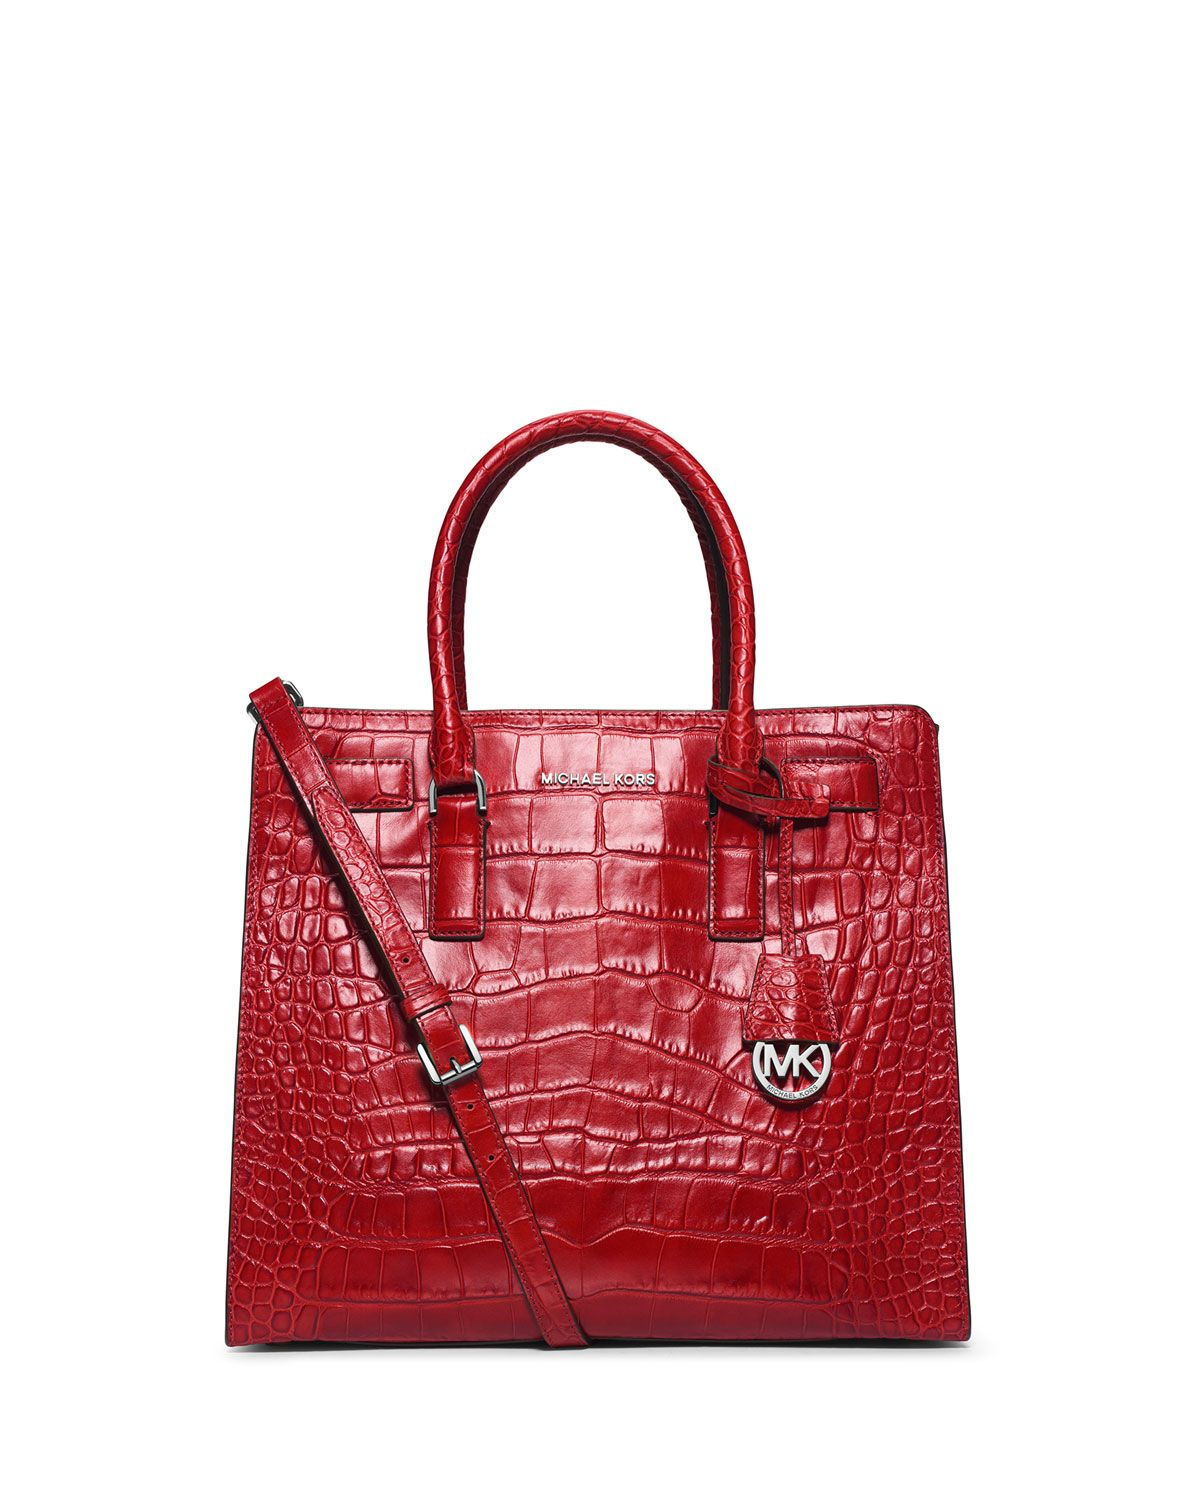 Michael Kors croc embossed